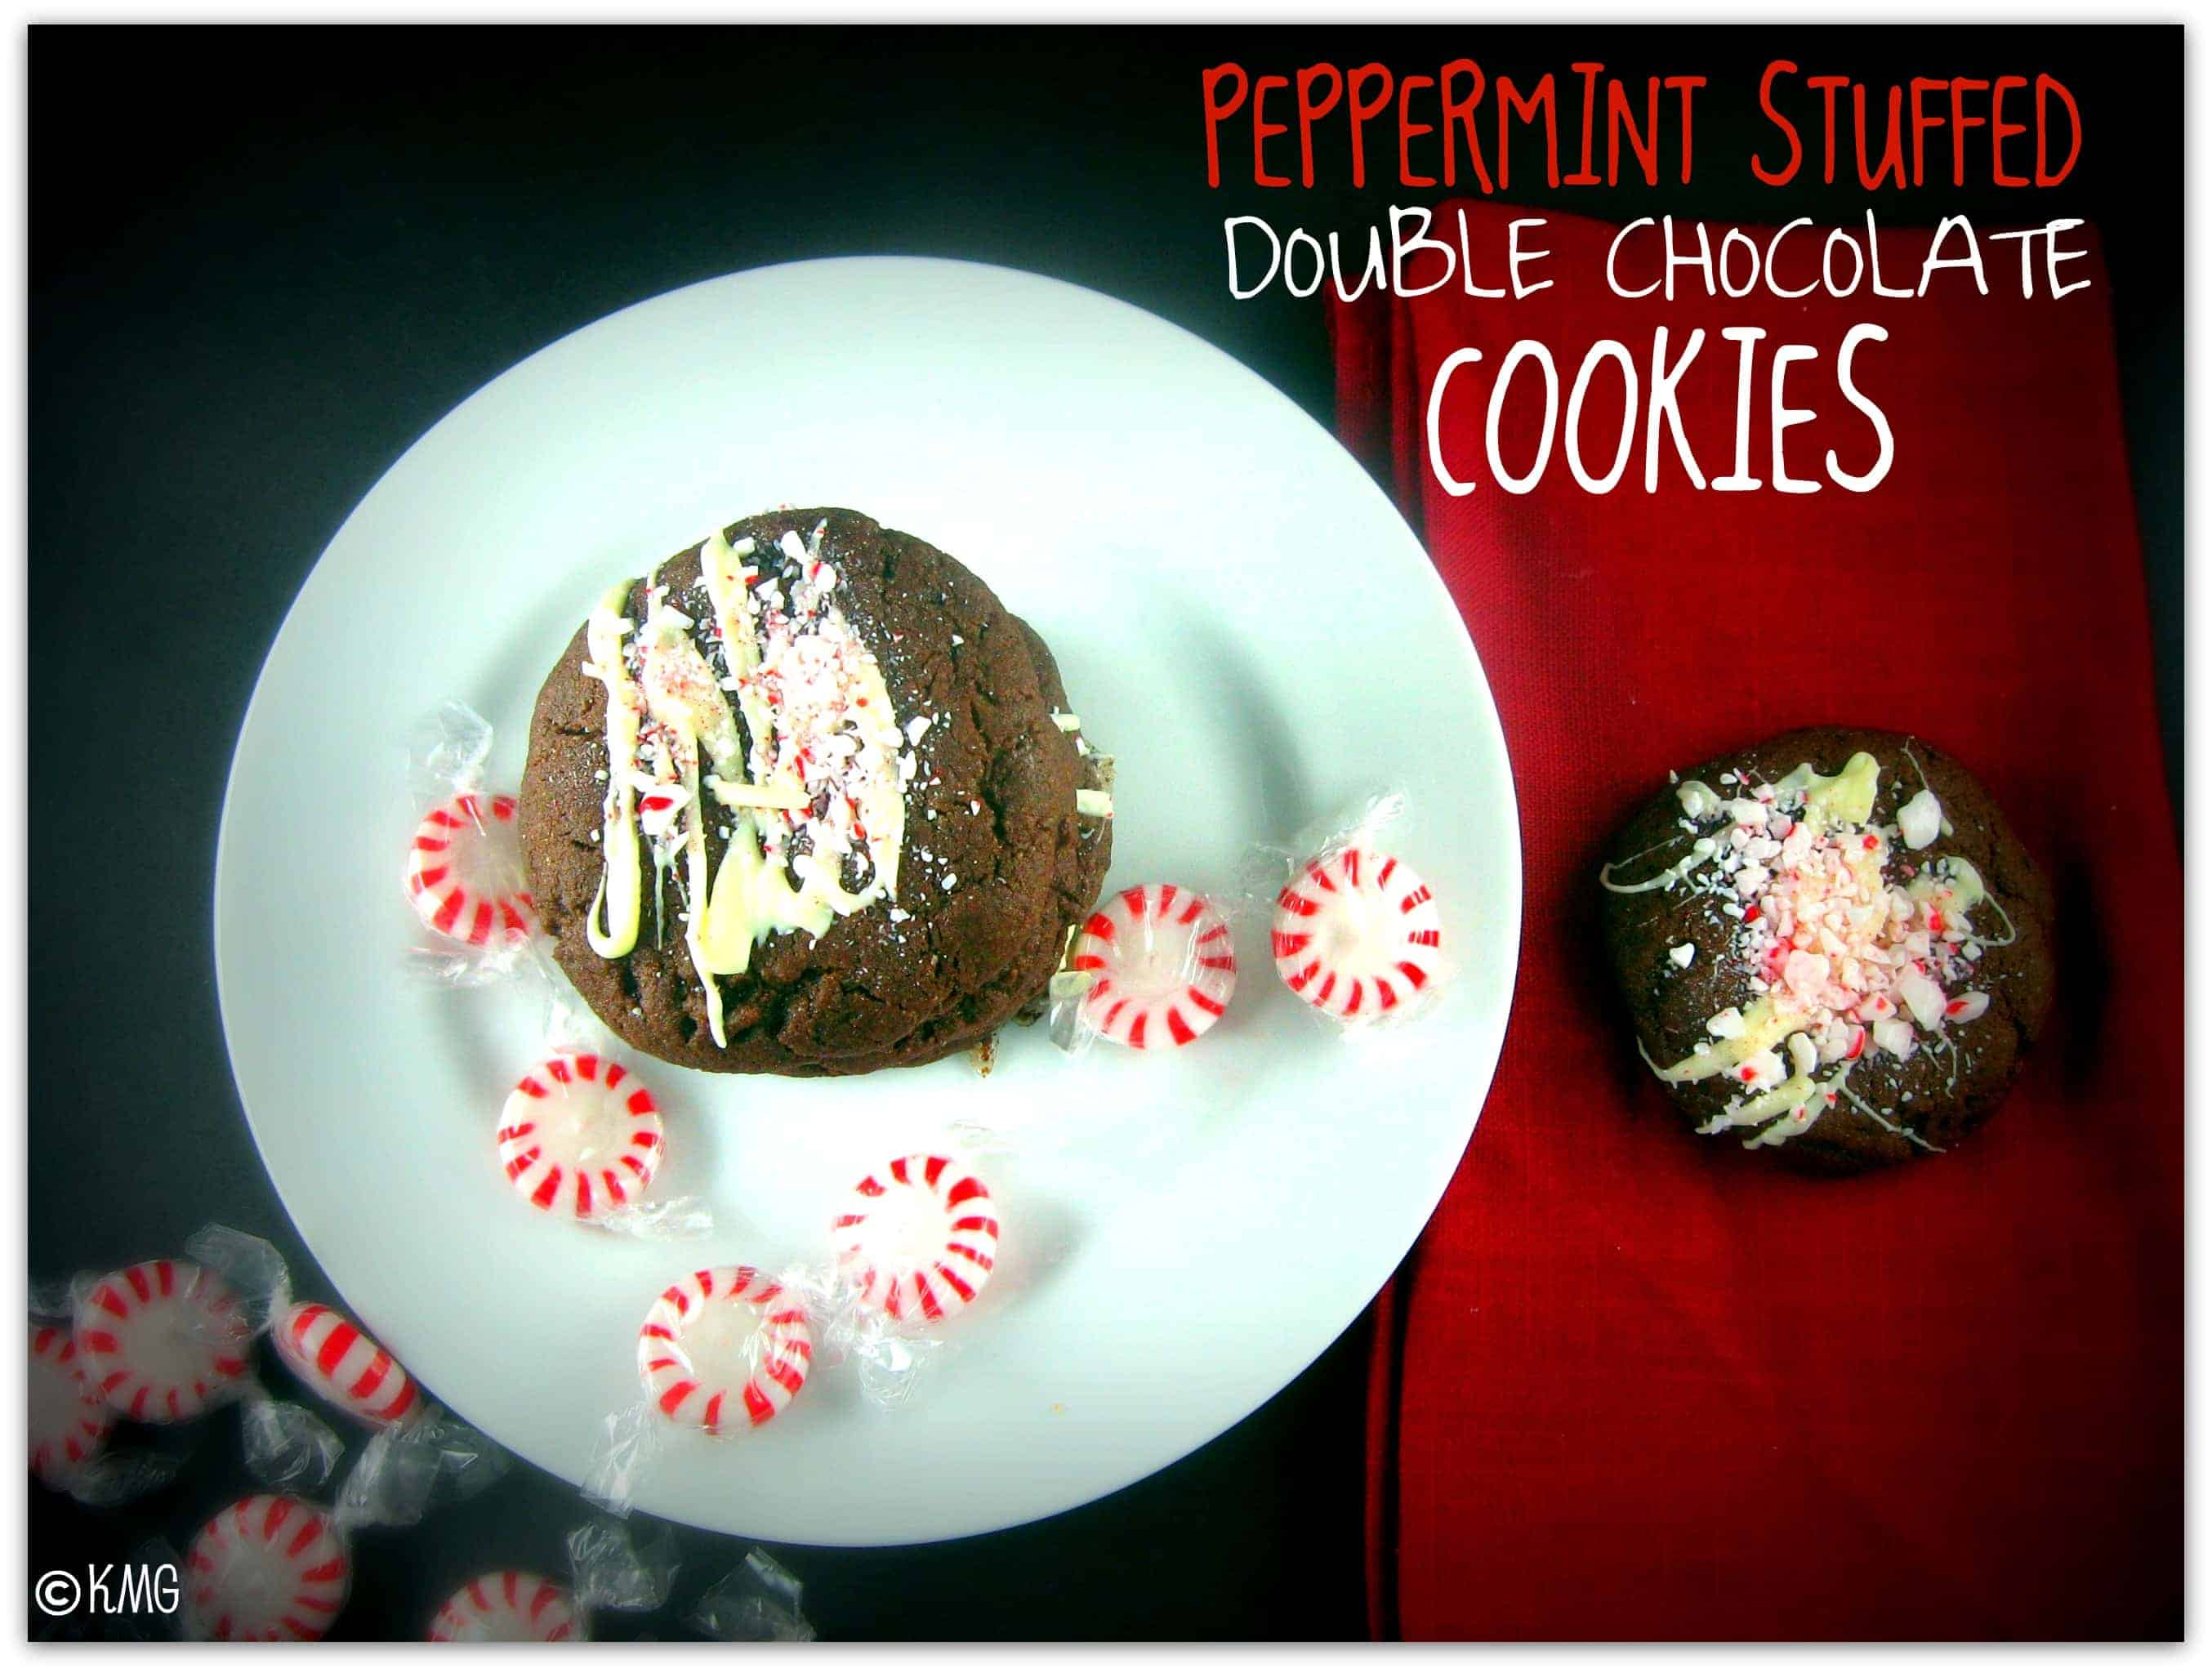 Peppermint-Stuffed Double Chocolate Cookies